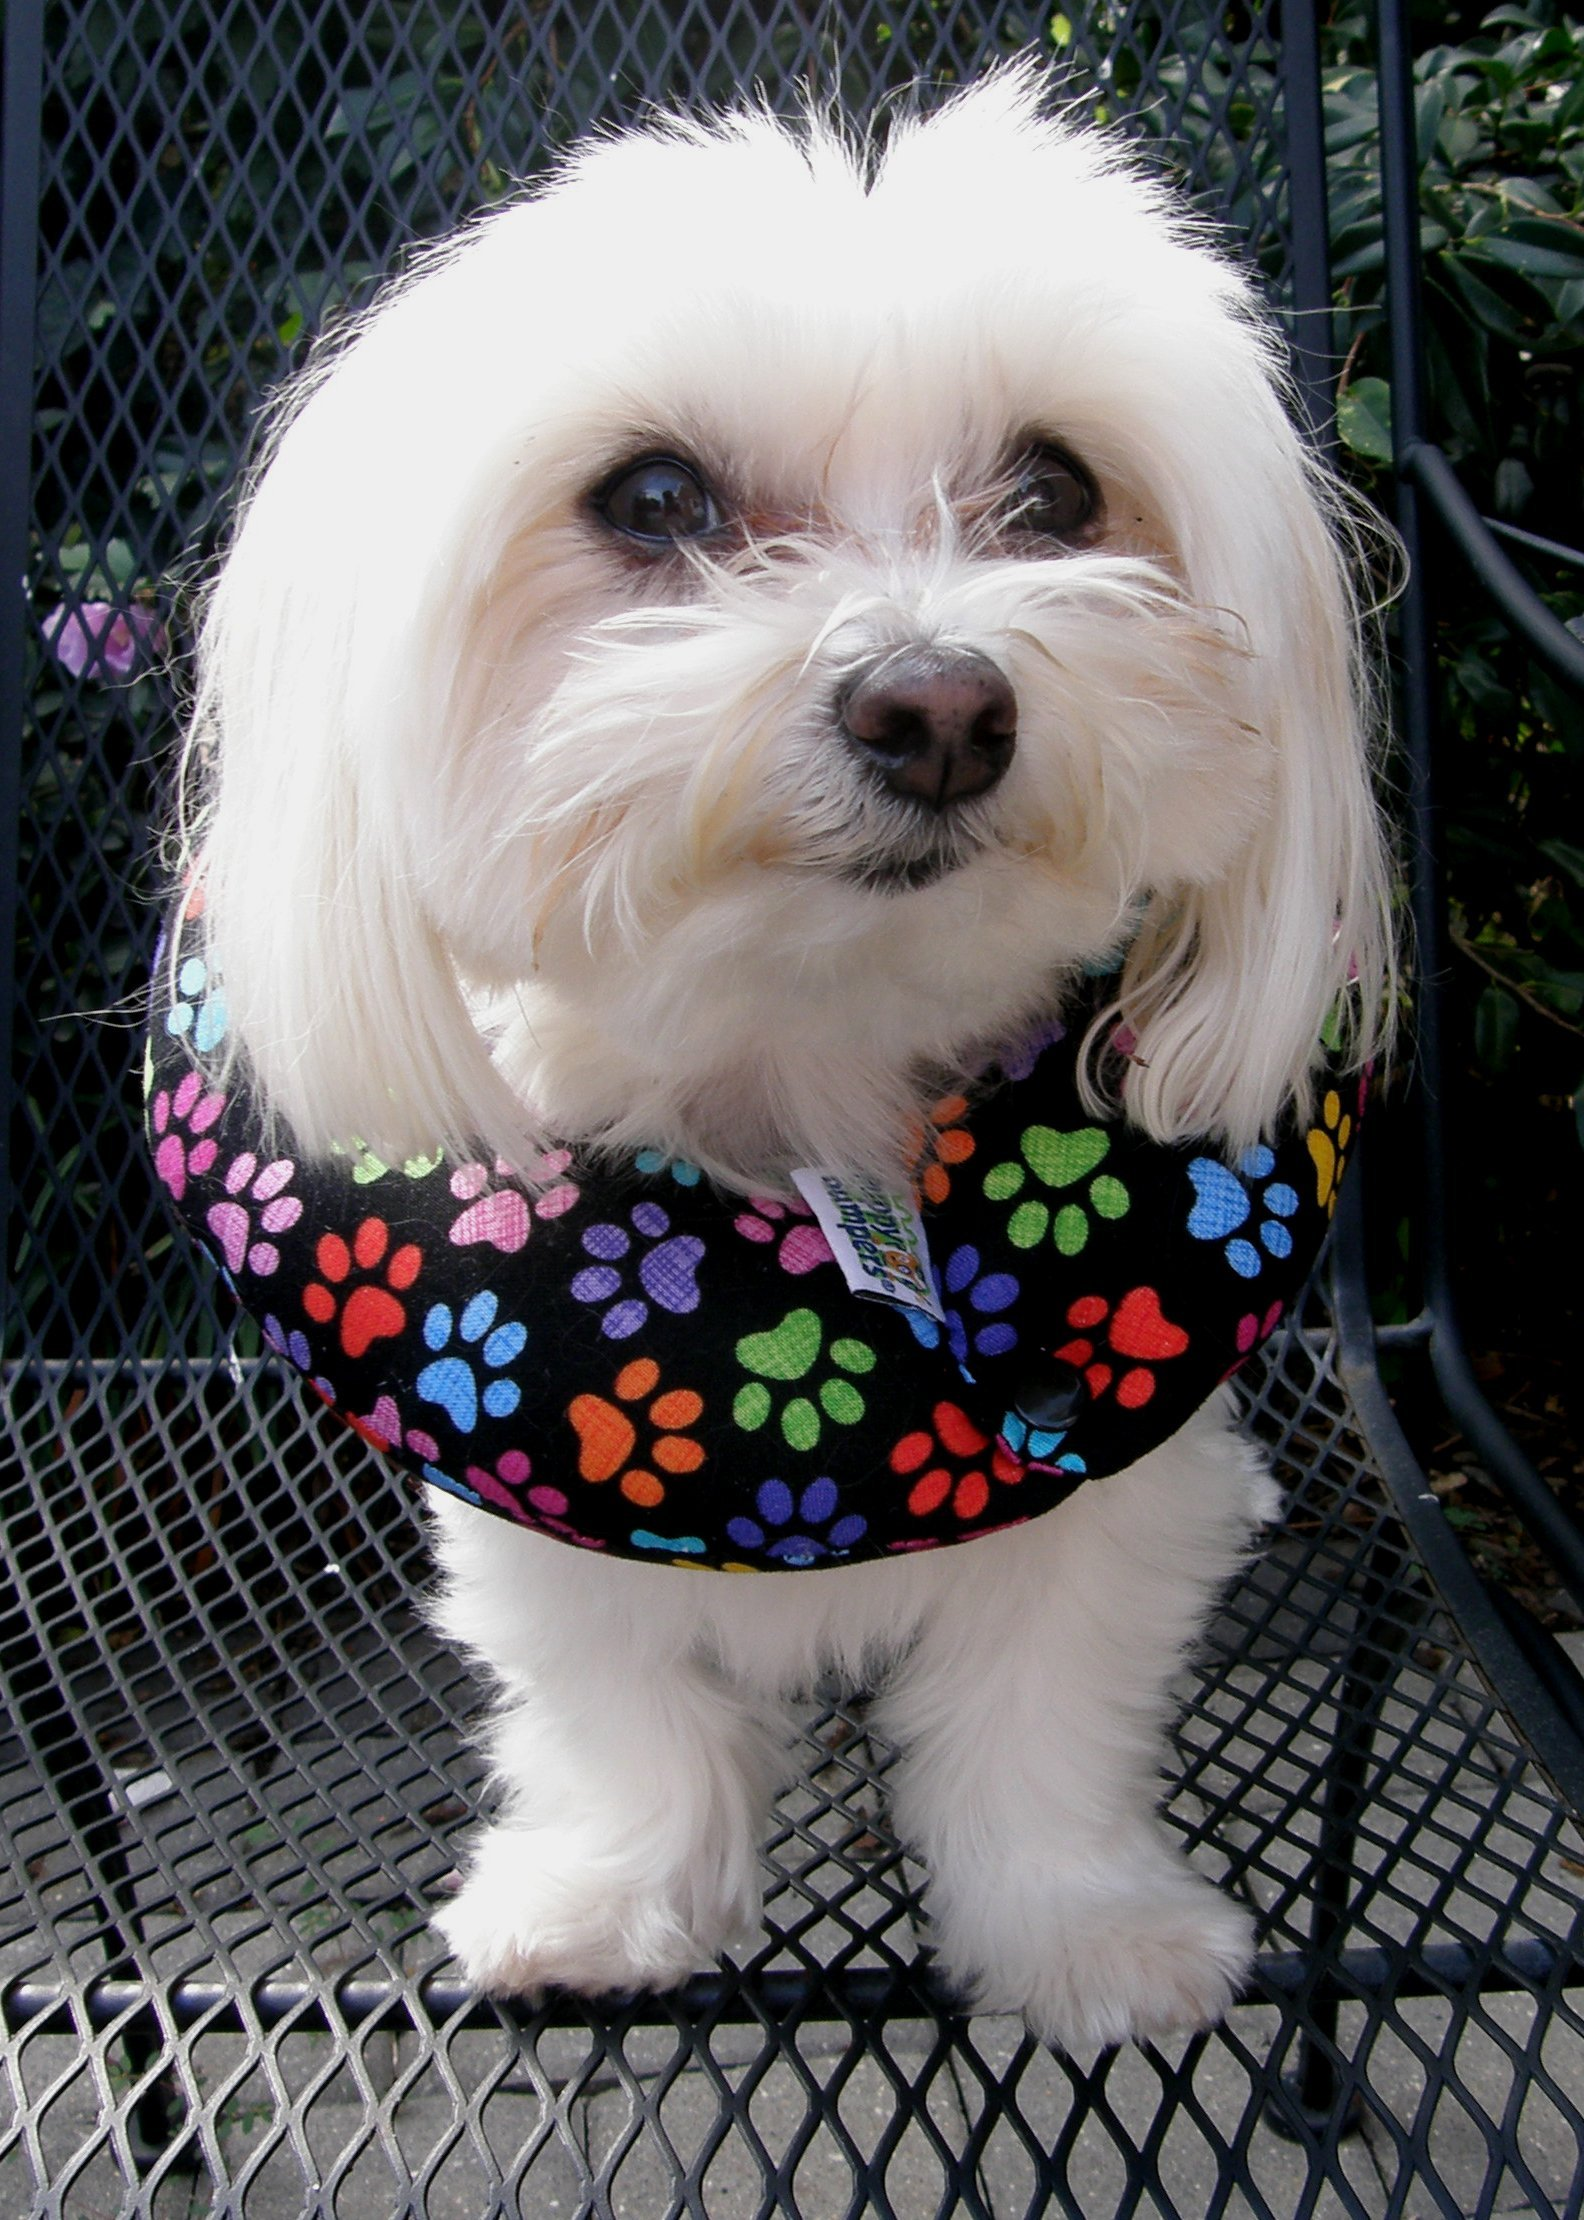 Puppy Bumpers Keep Your Dog on The Safe Side of The Fence - Rainbow Paw (up to 10'')